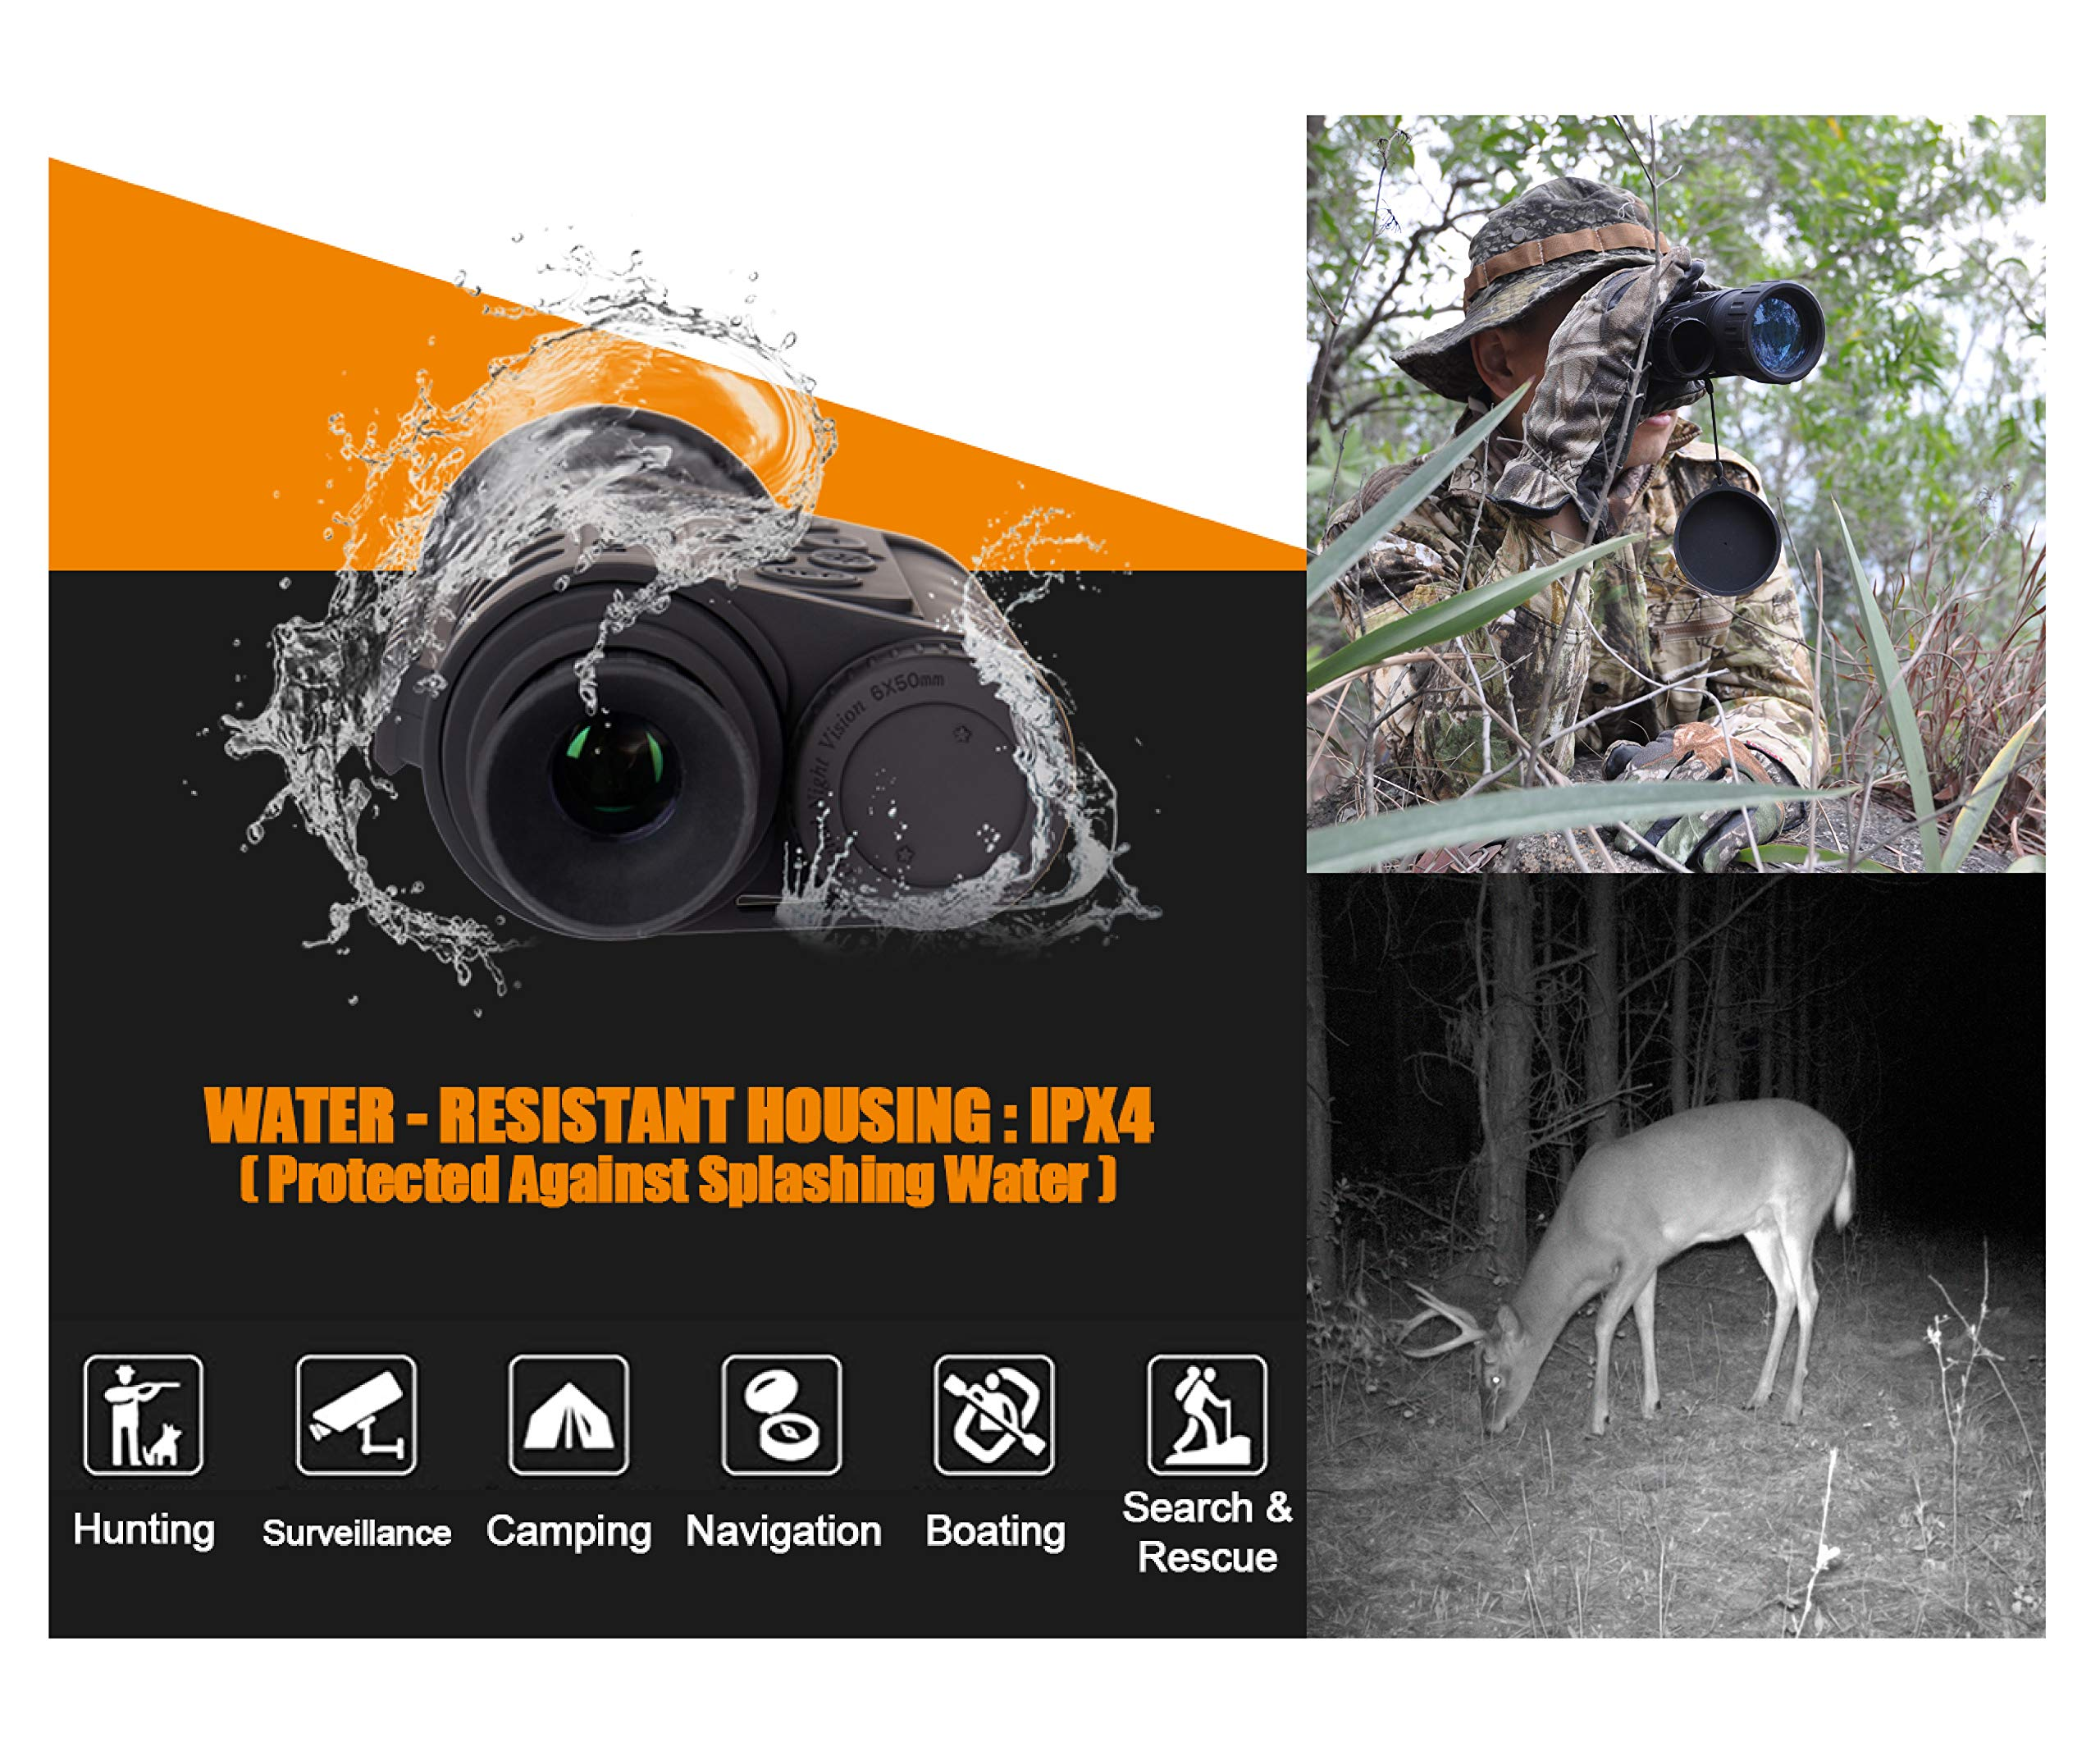 Summit Tools HD Digital Night Vision Monocular up to 1150 FT Range, 1.5-inch Display with Camera&Camcorder Function, 6X Magnification and 50 mm Objective Lens, Takes 5MP Photo & HD Video by Summit Tools (Image #4)